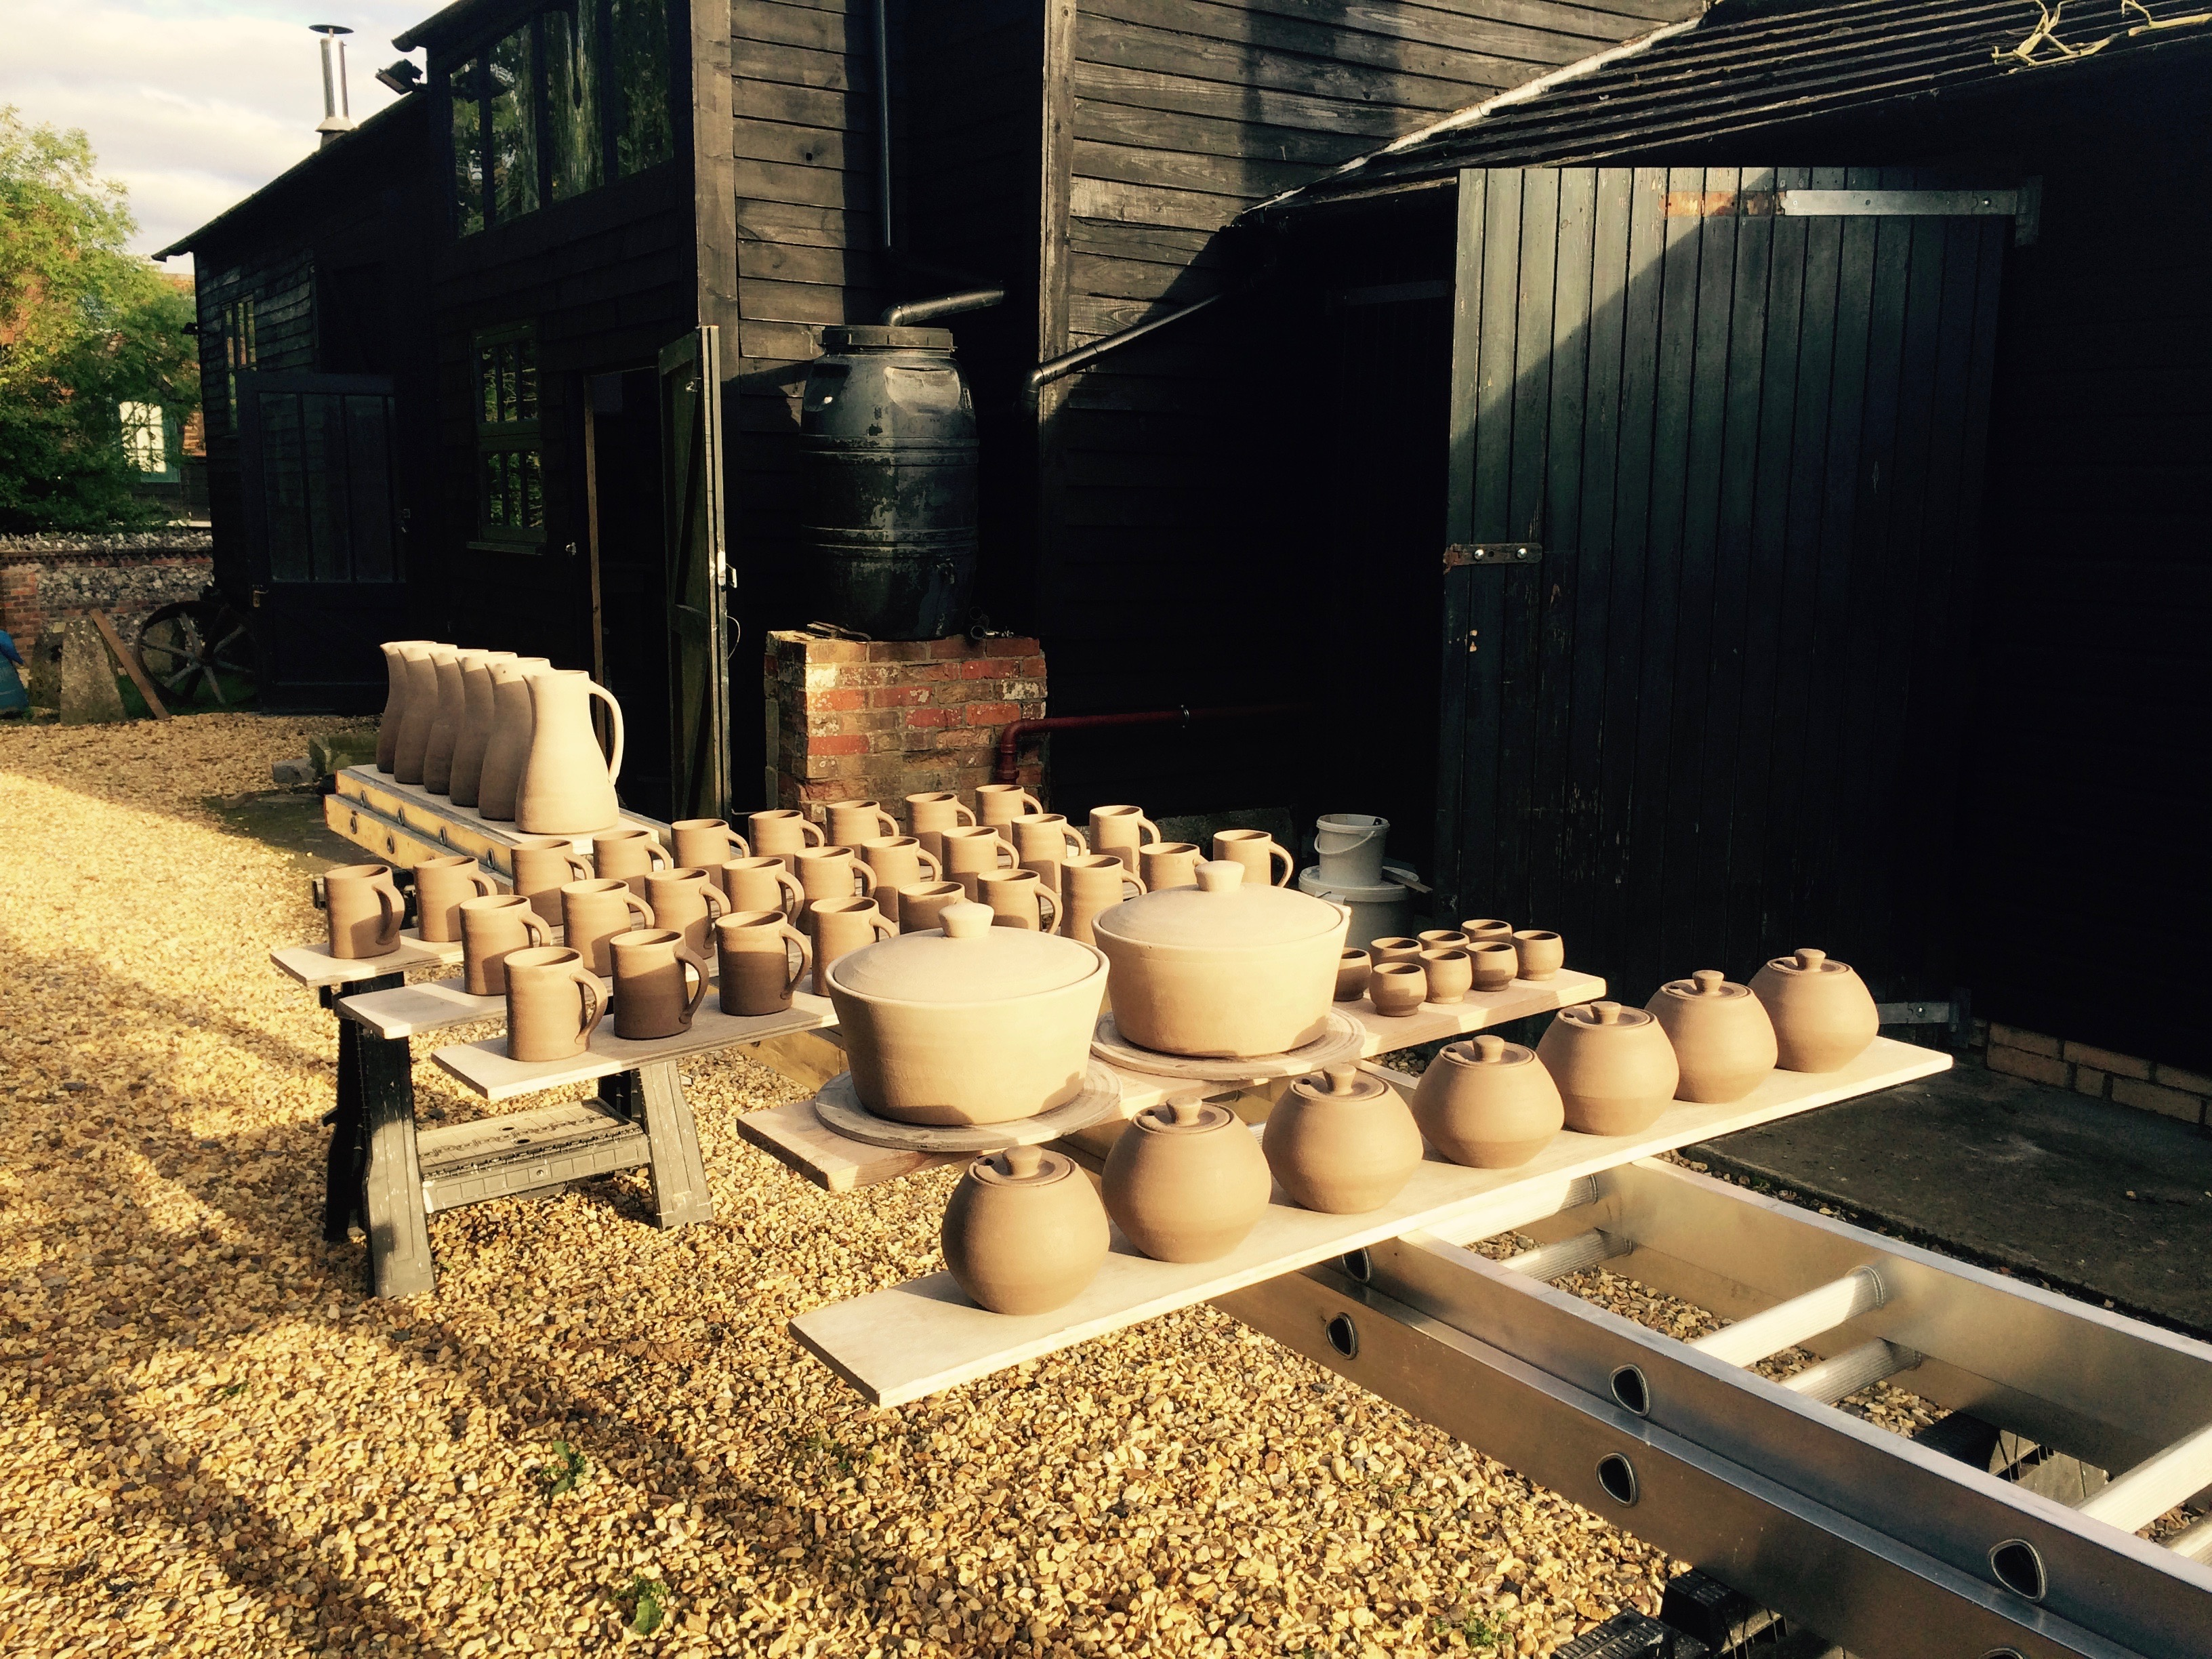 pots drying outside the studio